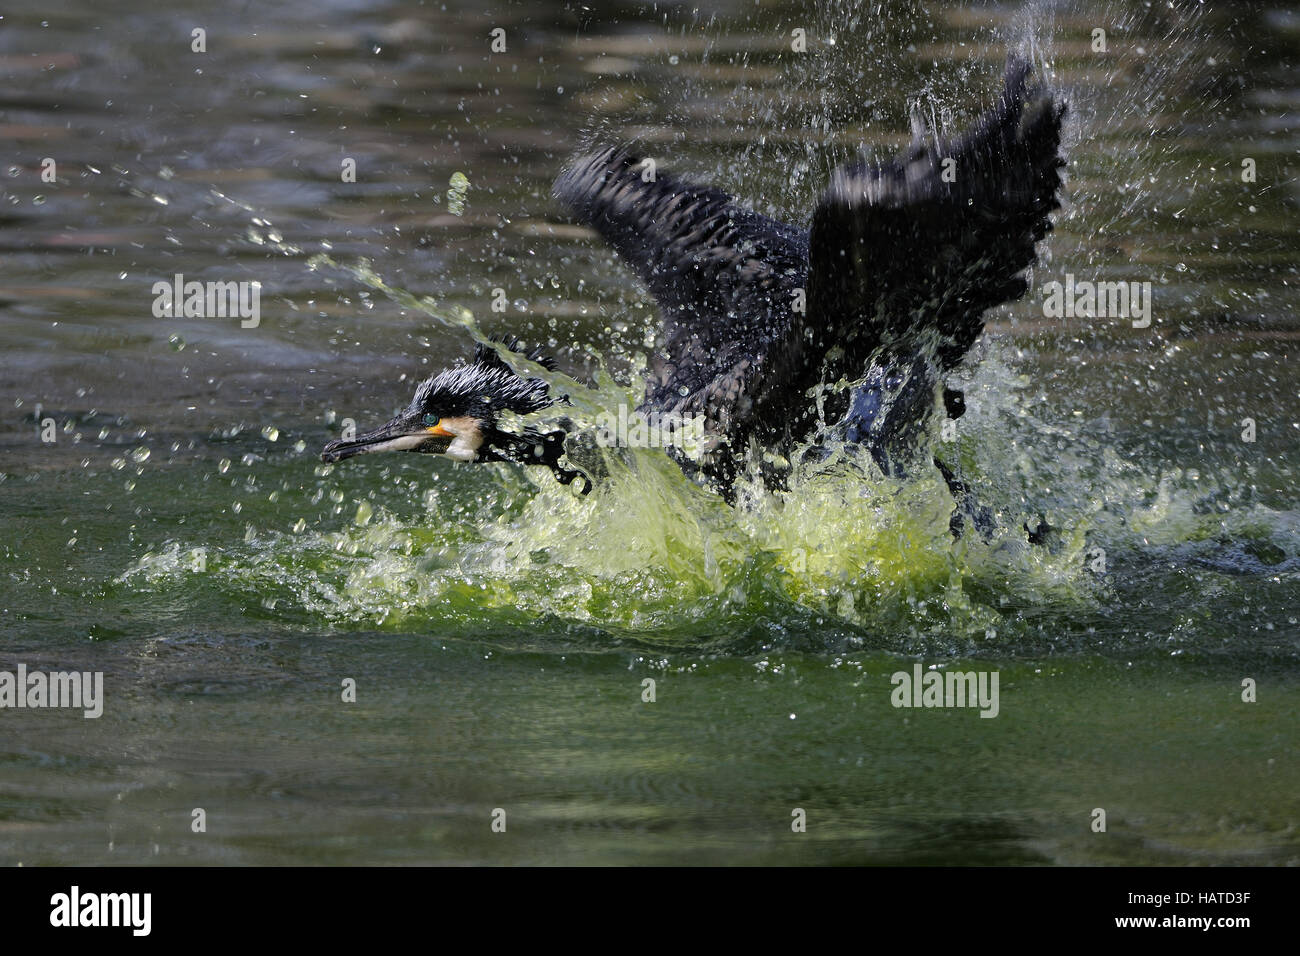 Cormorant (Phalacrocorax carbo) - Stock Image